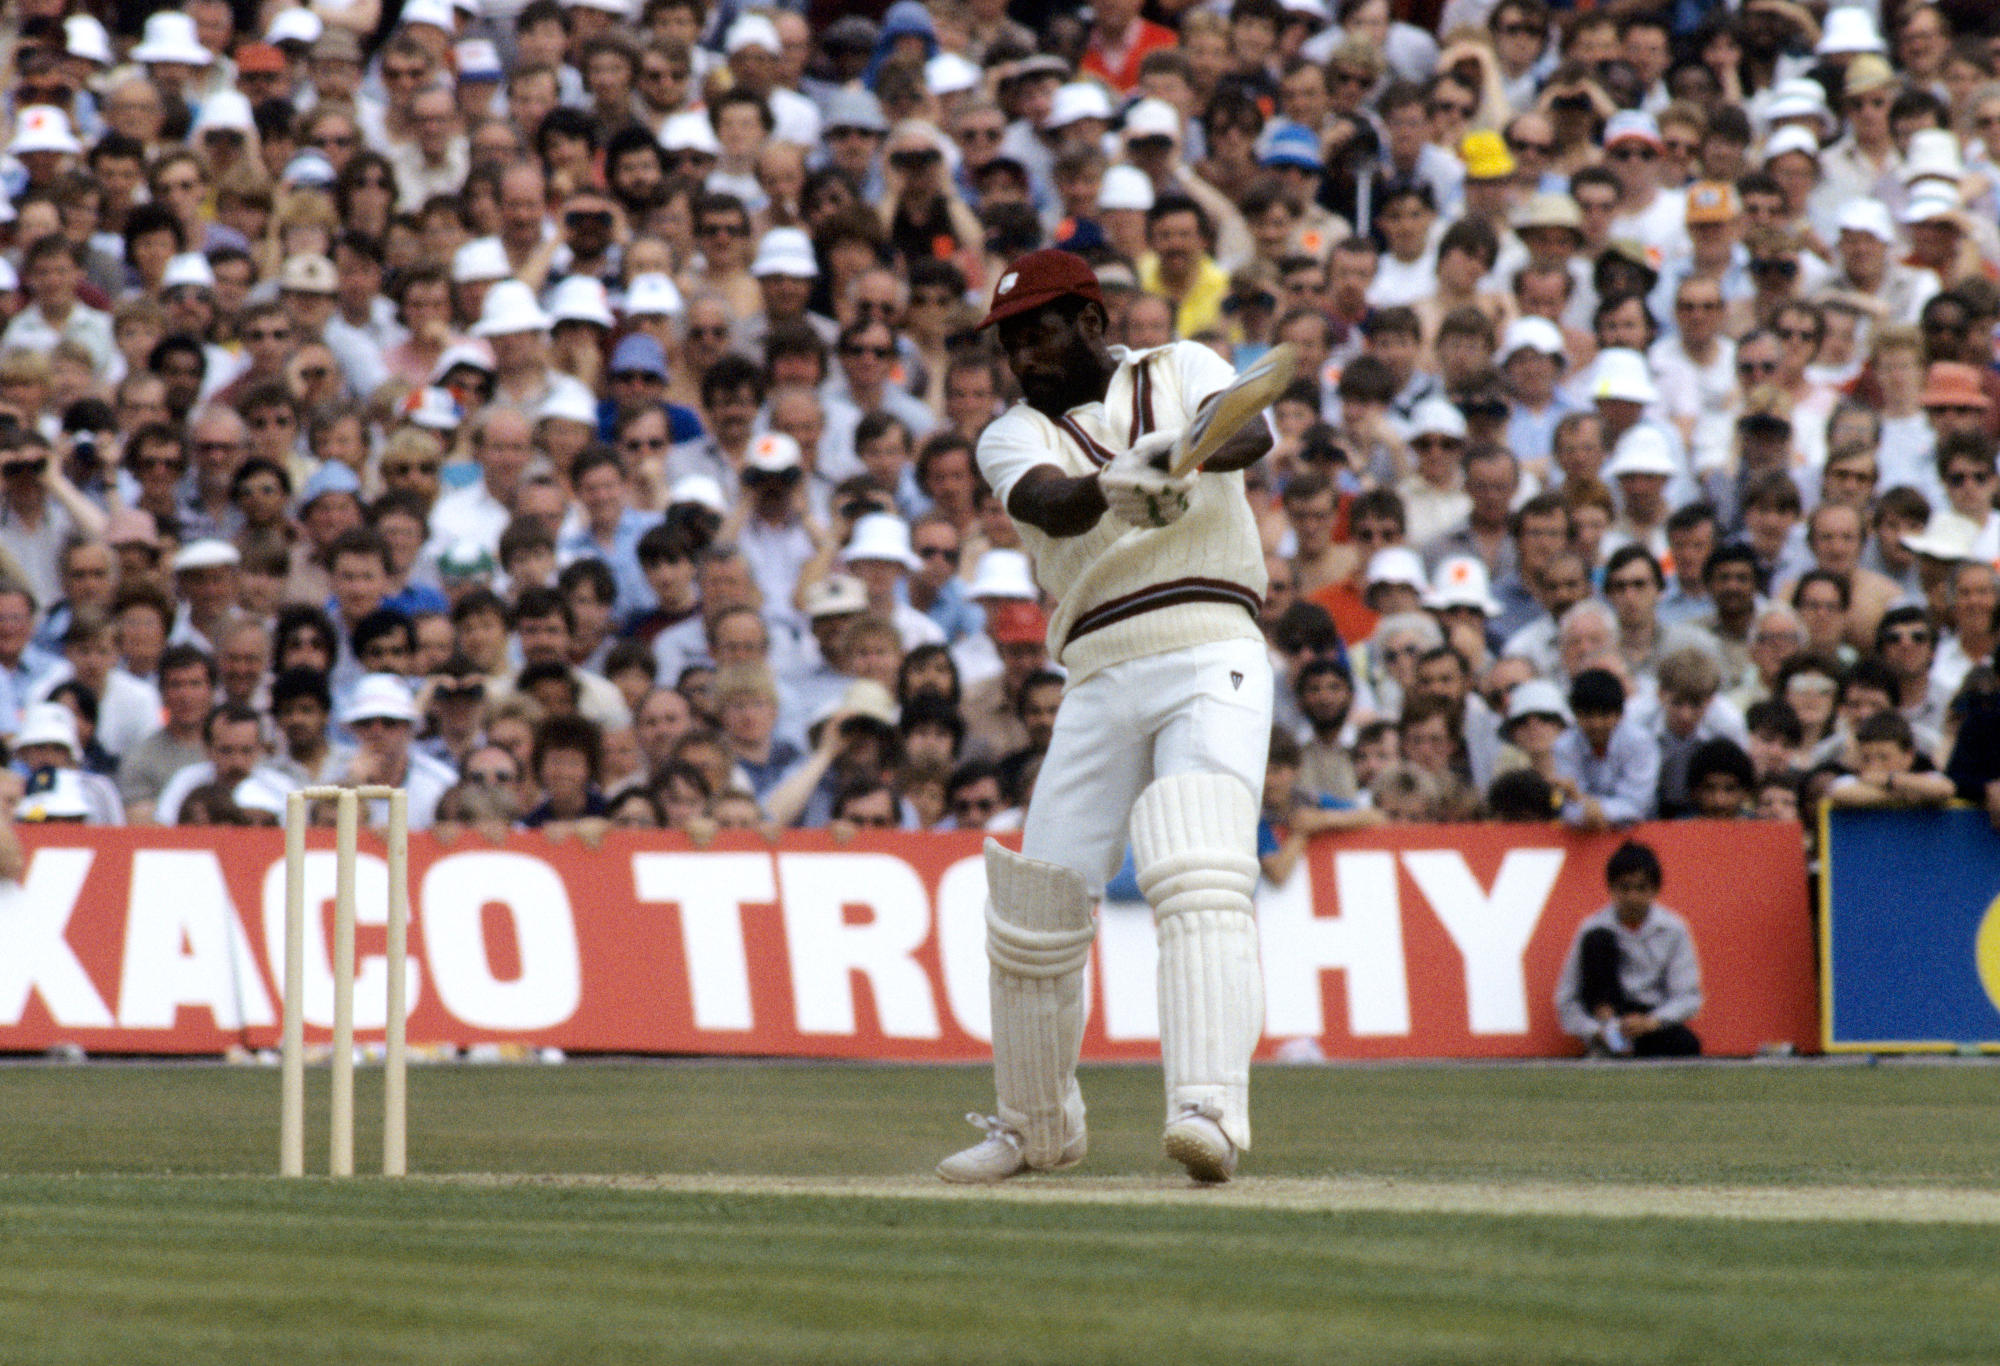 West Indies' Viv Richards cuts the ball away during his record-breaking innings of 189 not out.